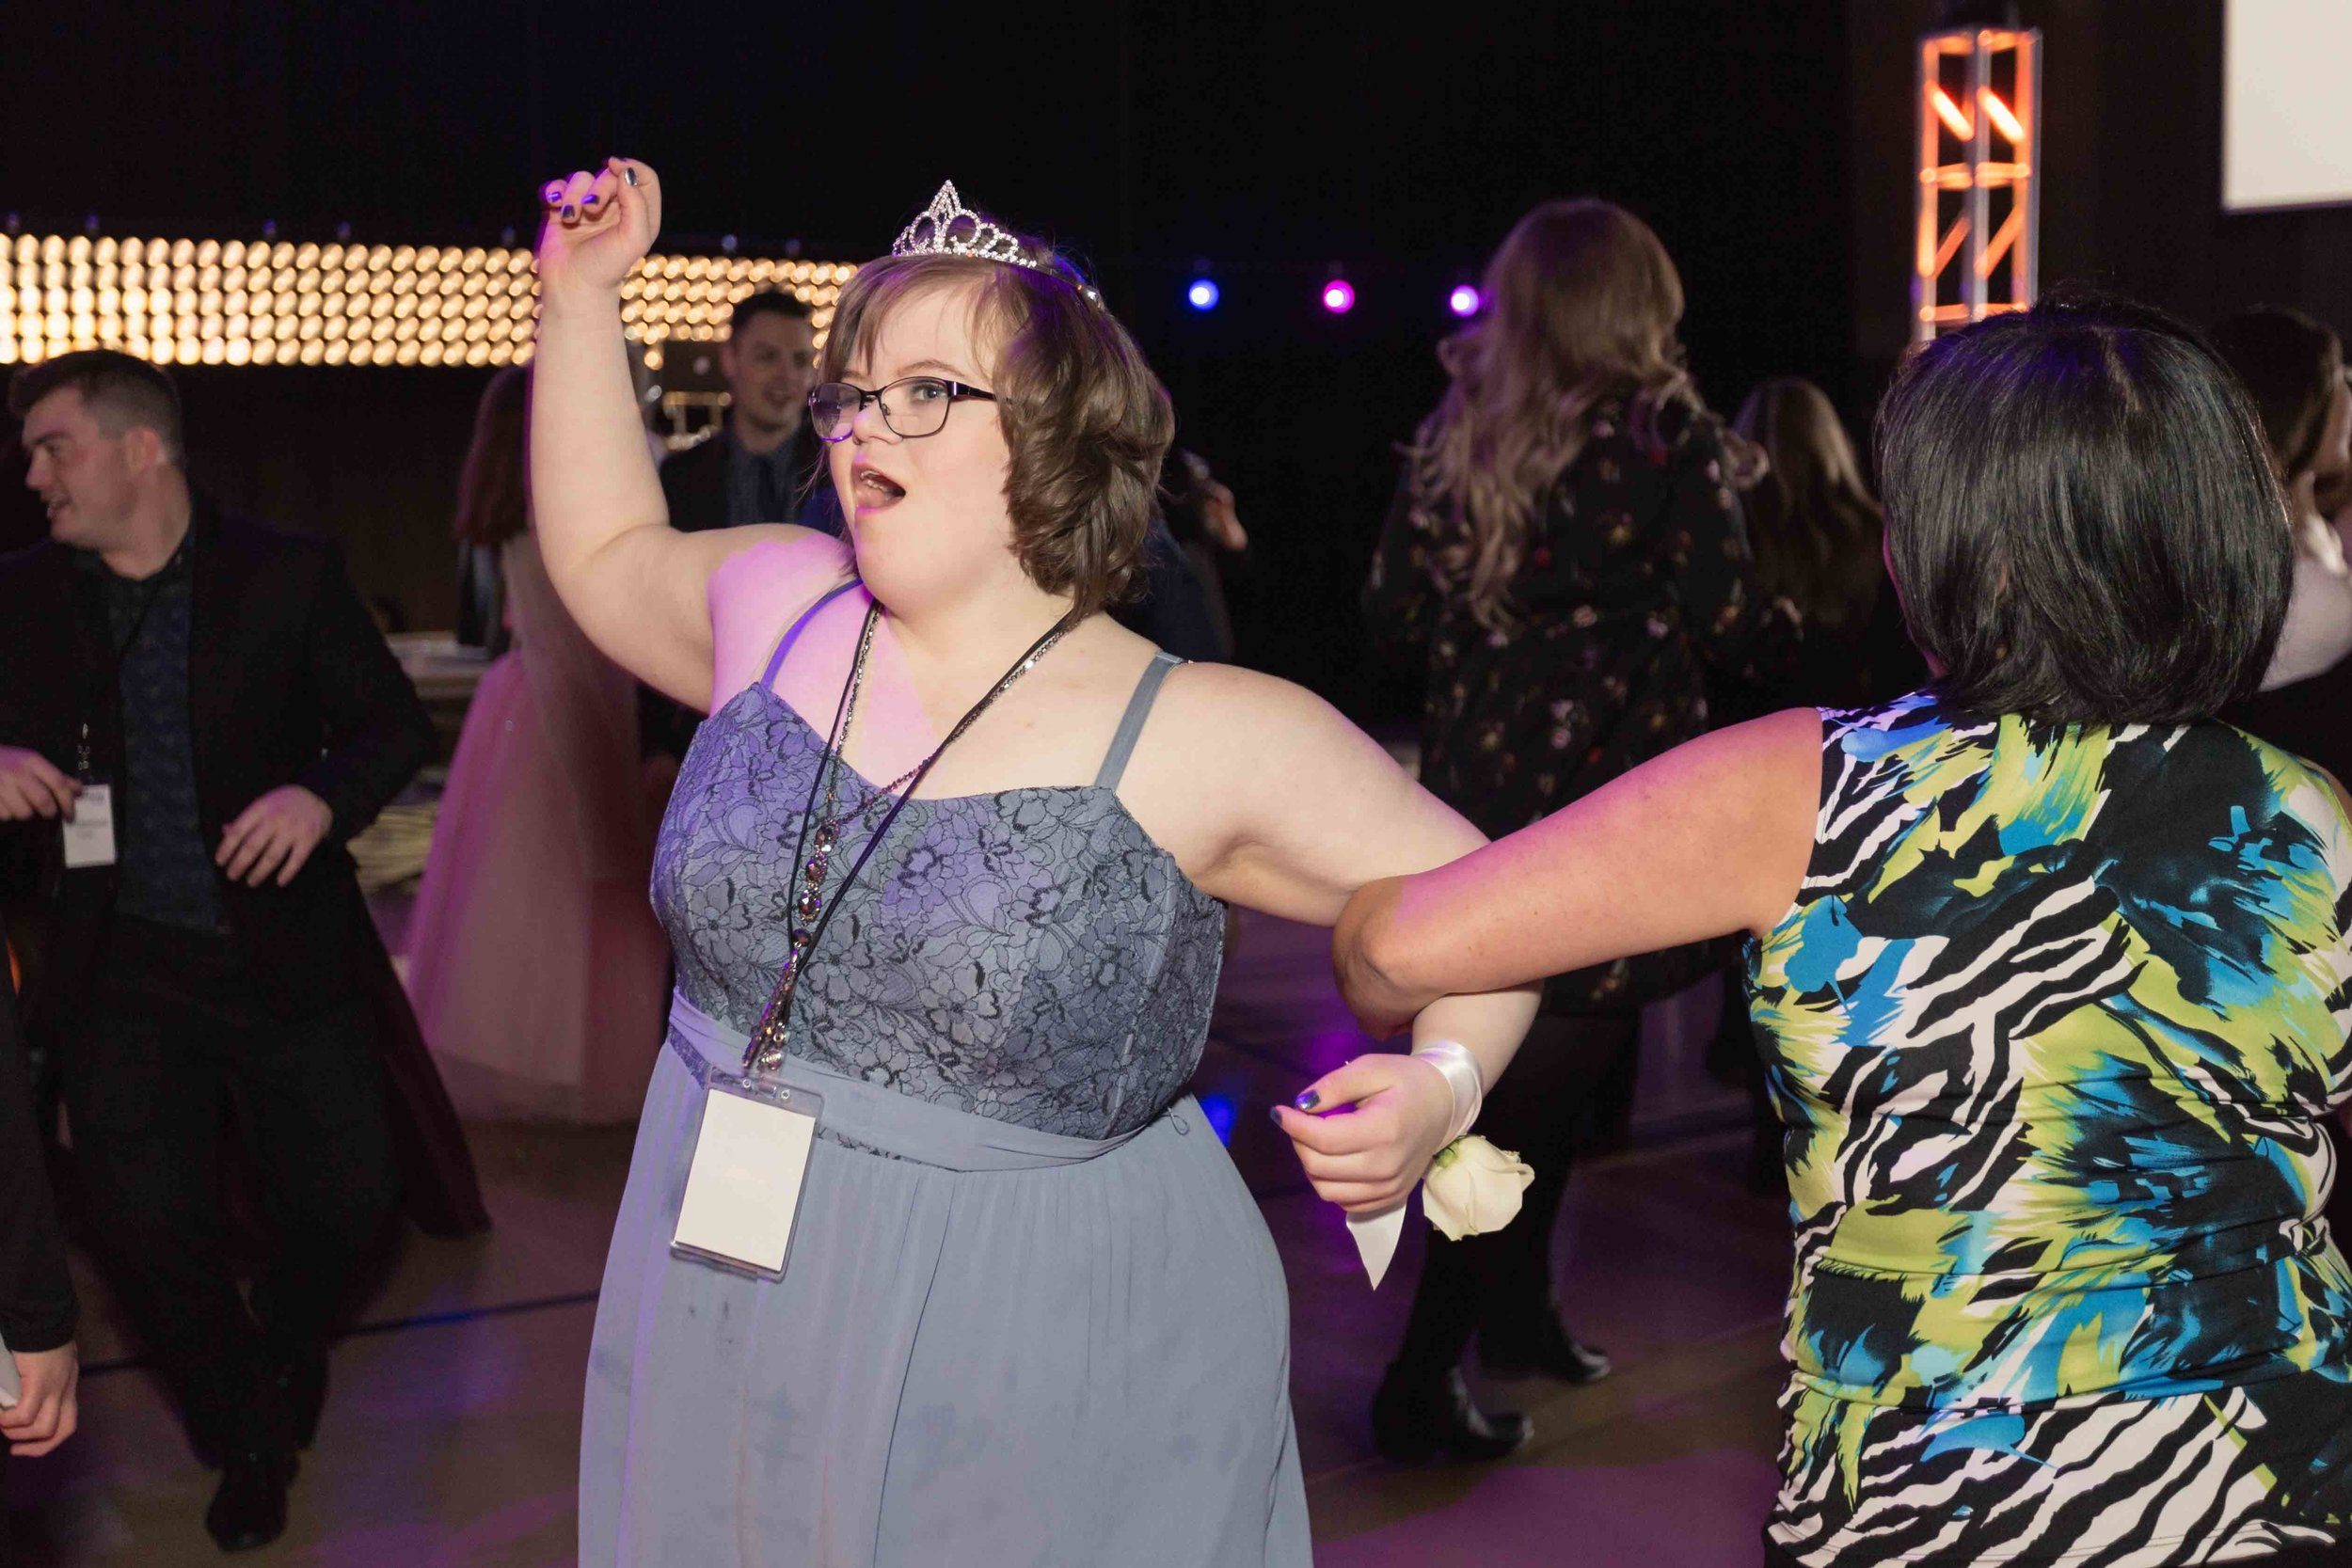 InBetweenDreamsWedding_NightToShine2018_HorizonChurch (430 of 514).jpg